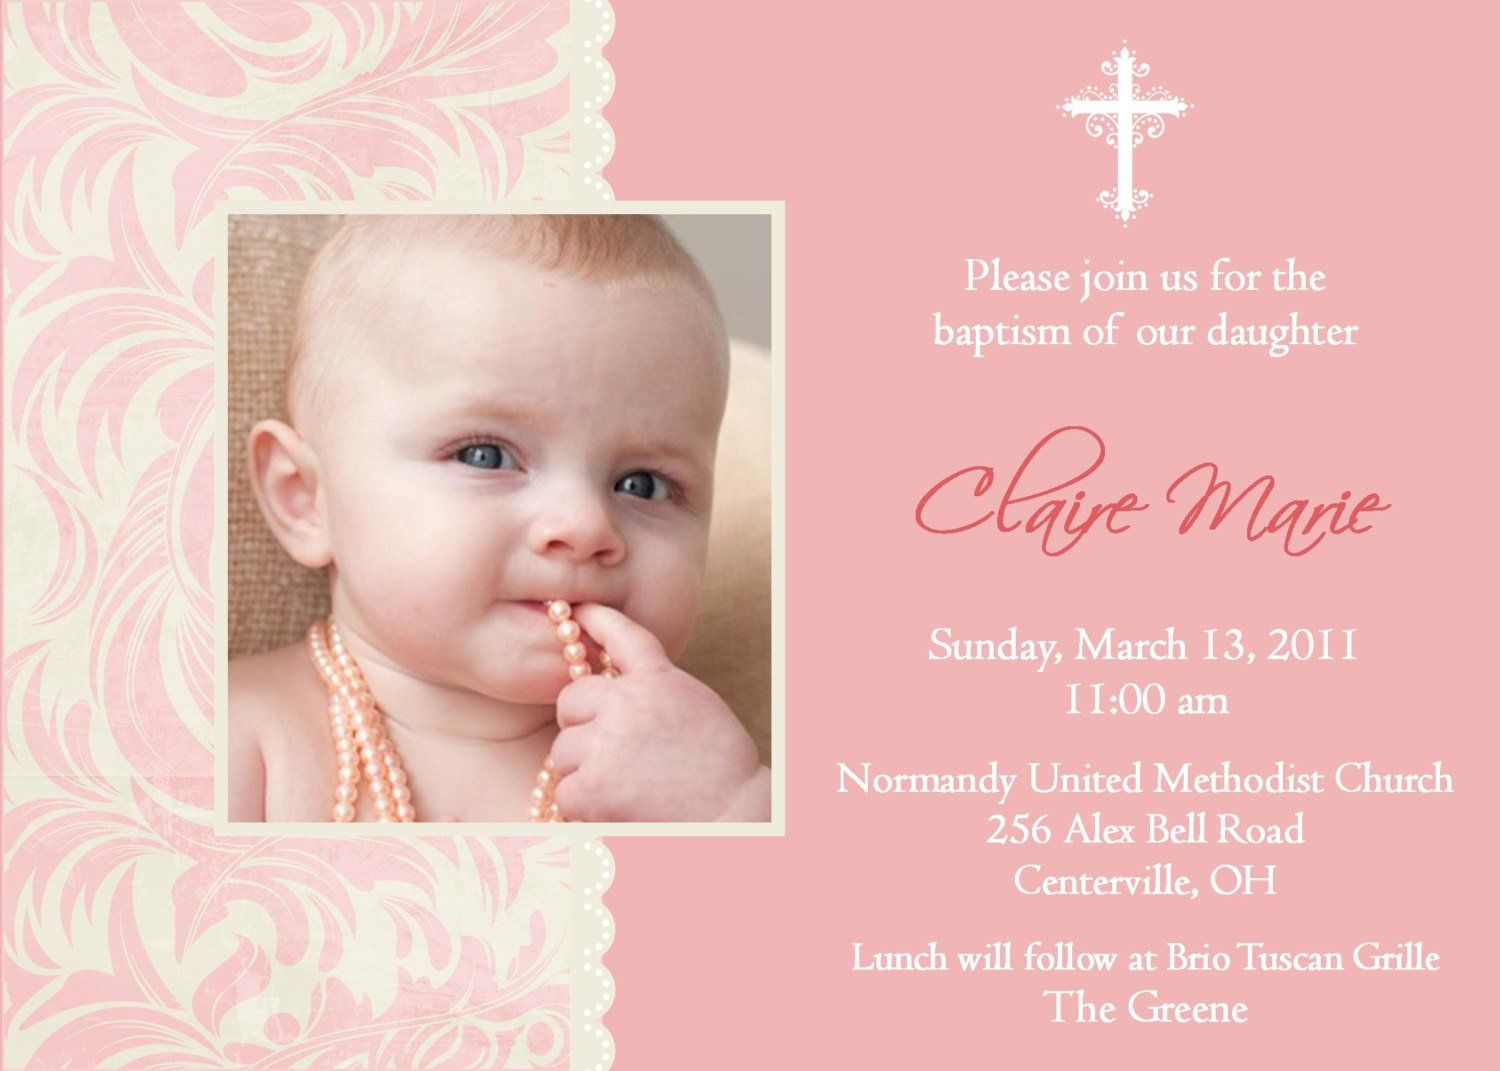 Best font for christening invitation invitations pinterest wording sample ideas for baptism invitations stopboris